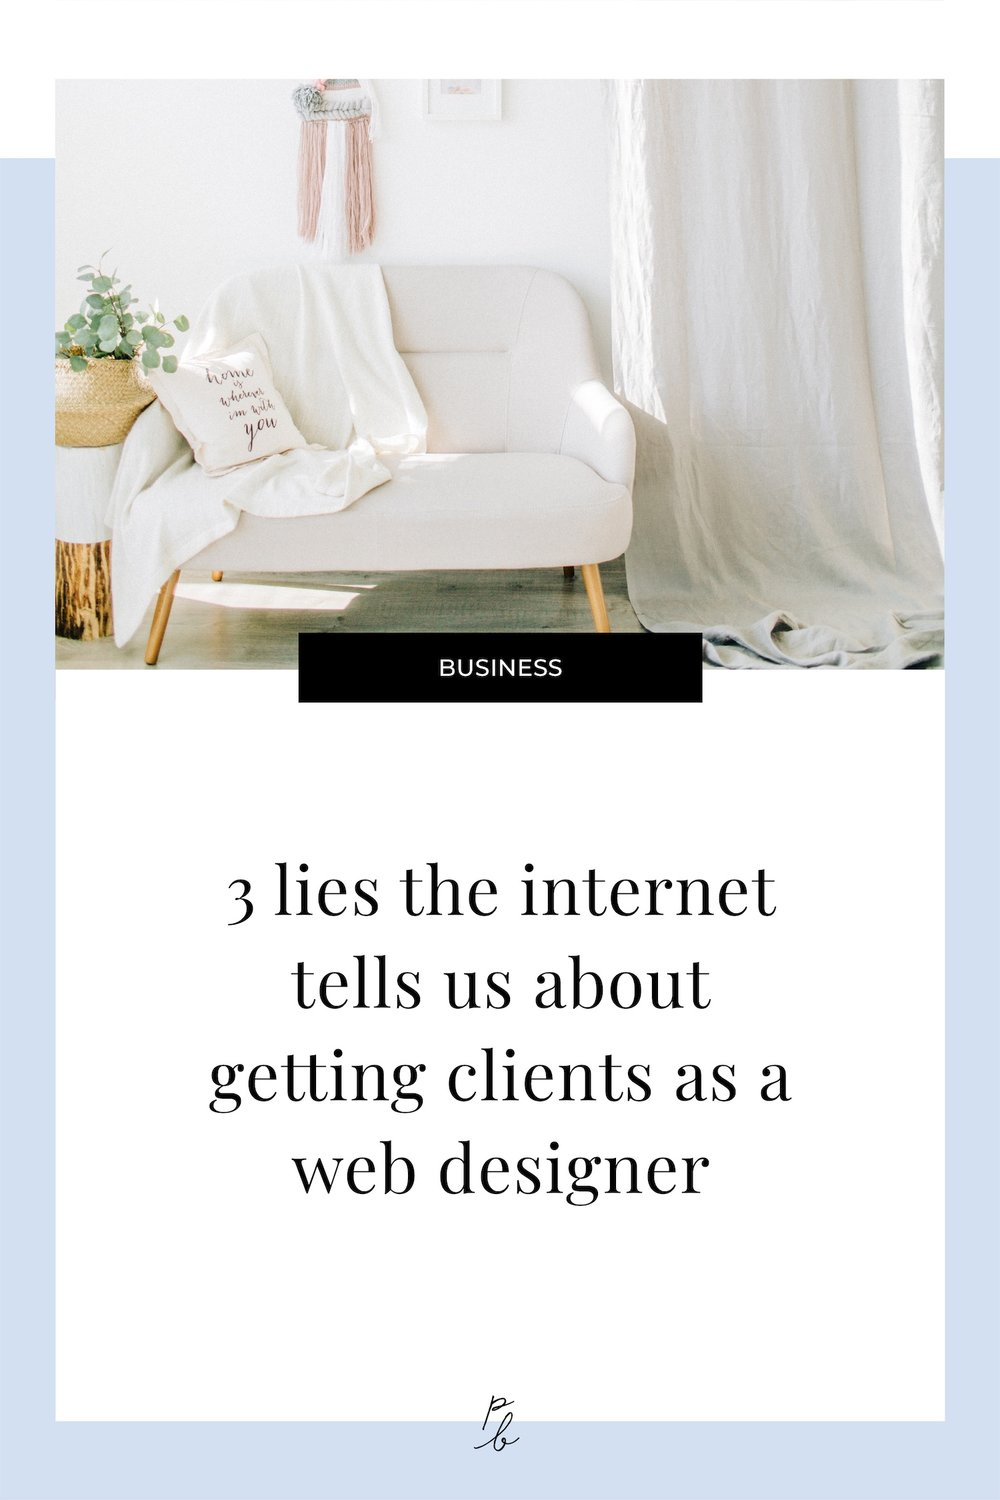 3 lies the internet tells us about getting clients as a web designer.jpg